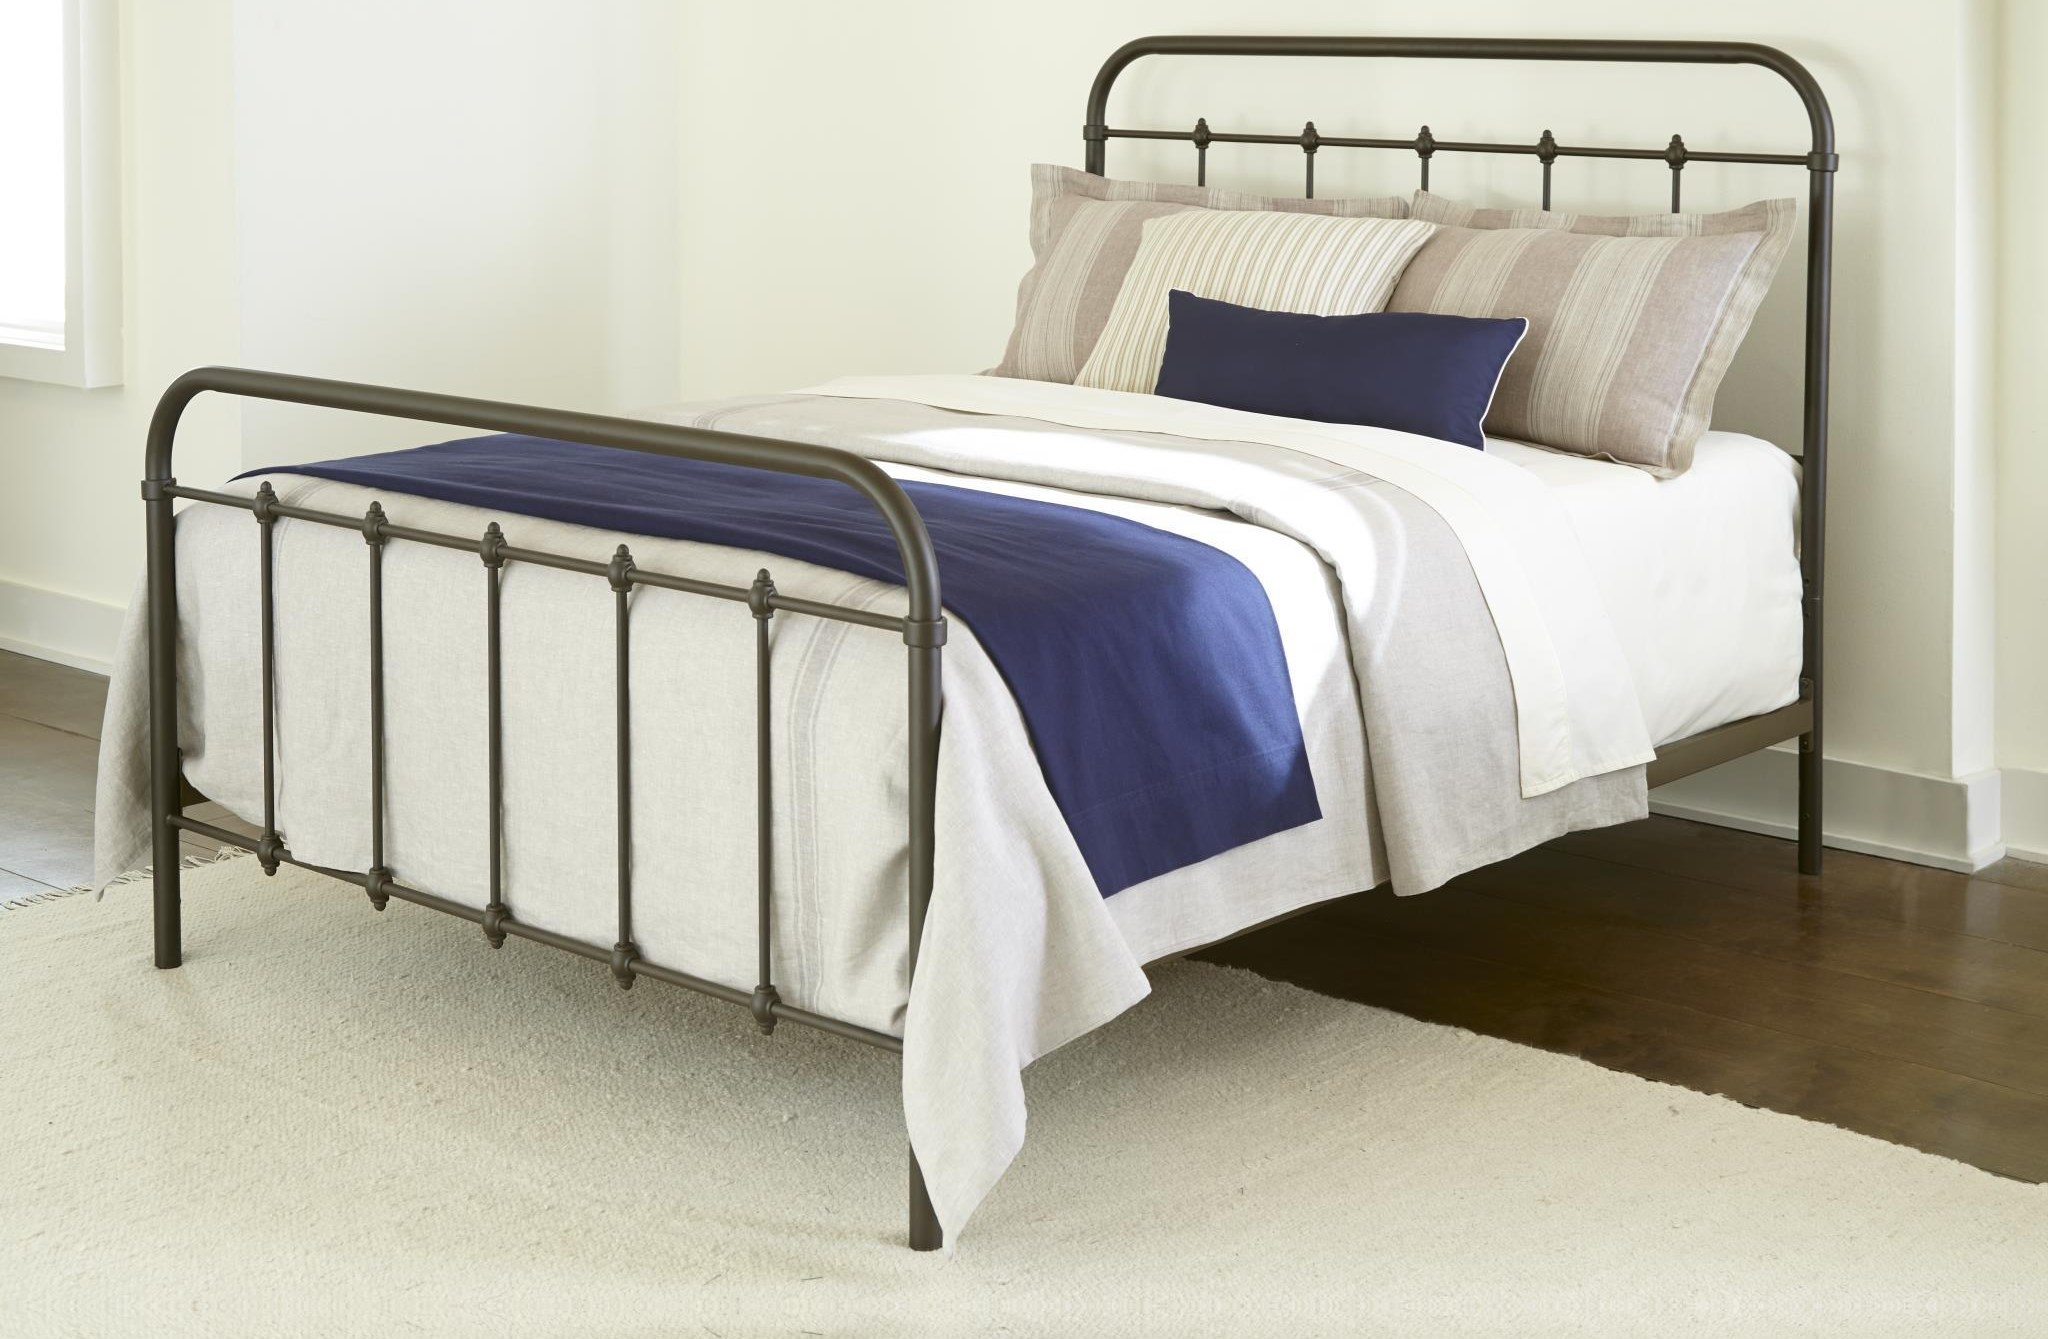 232Grey Queen Size Metal Bed by Kith Furniture at Furniture Fair - North Carolina